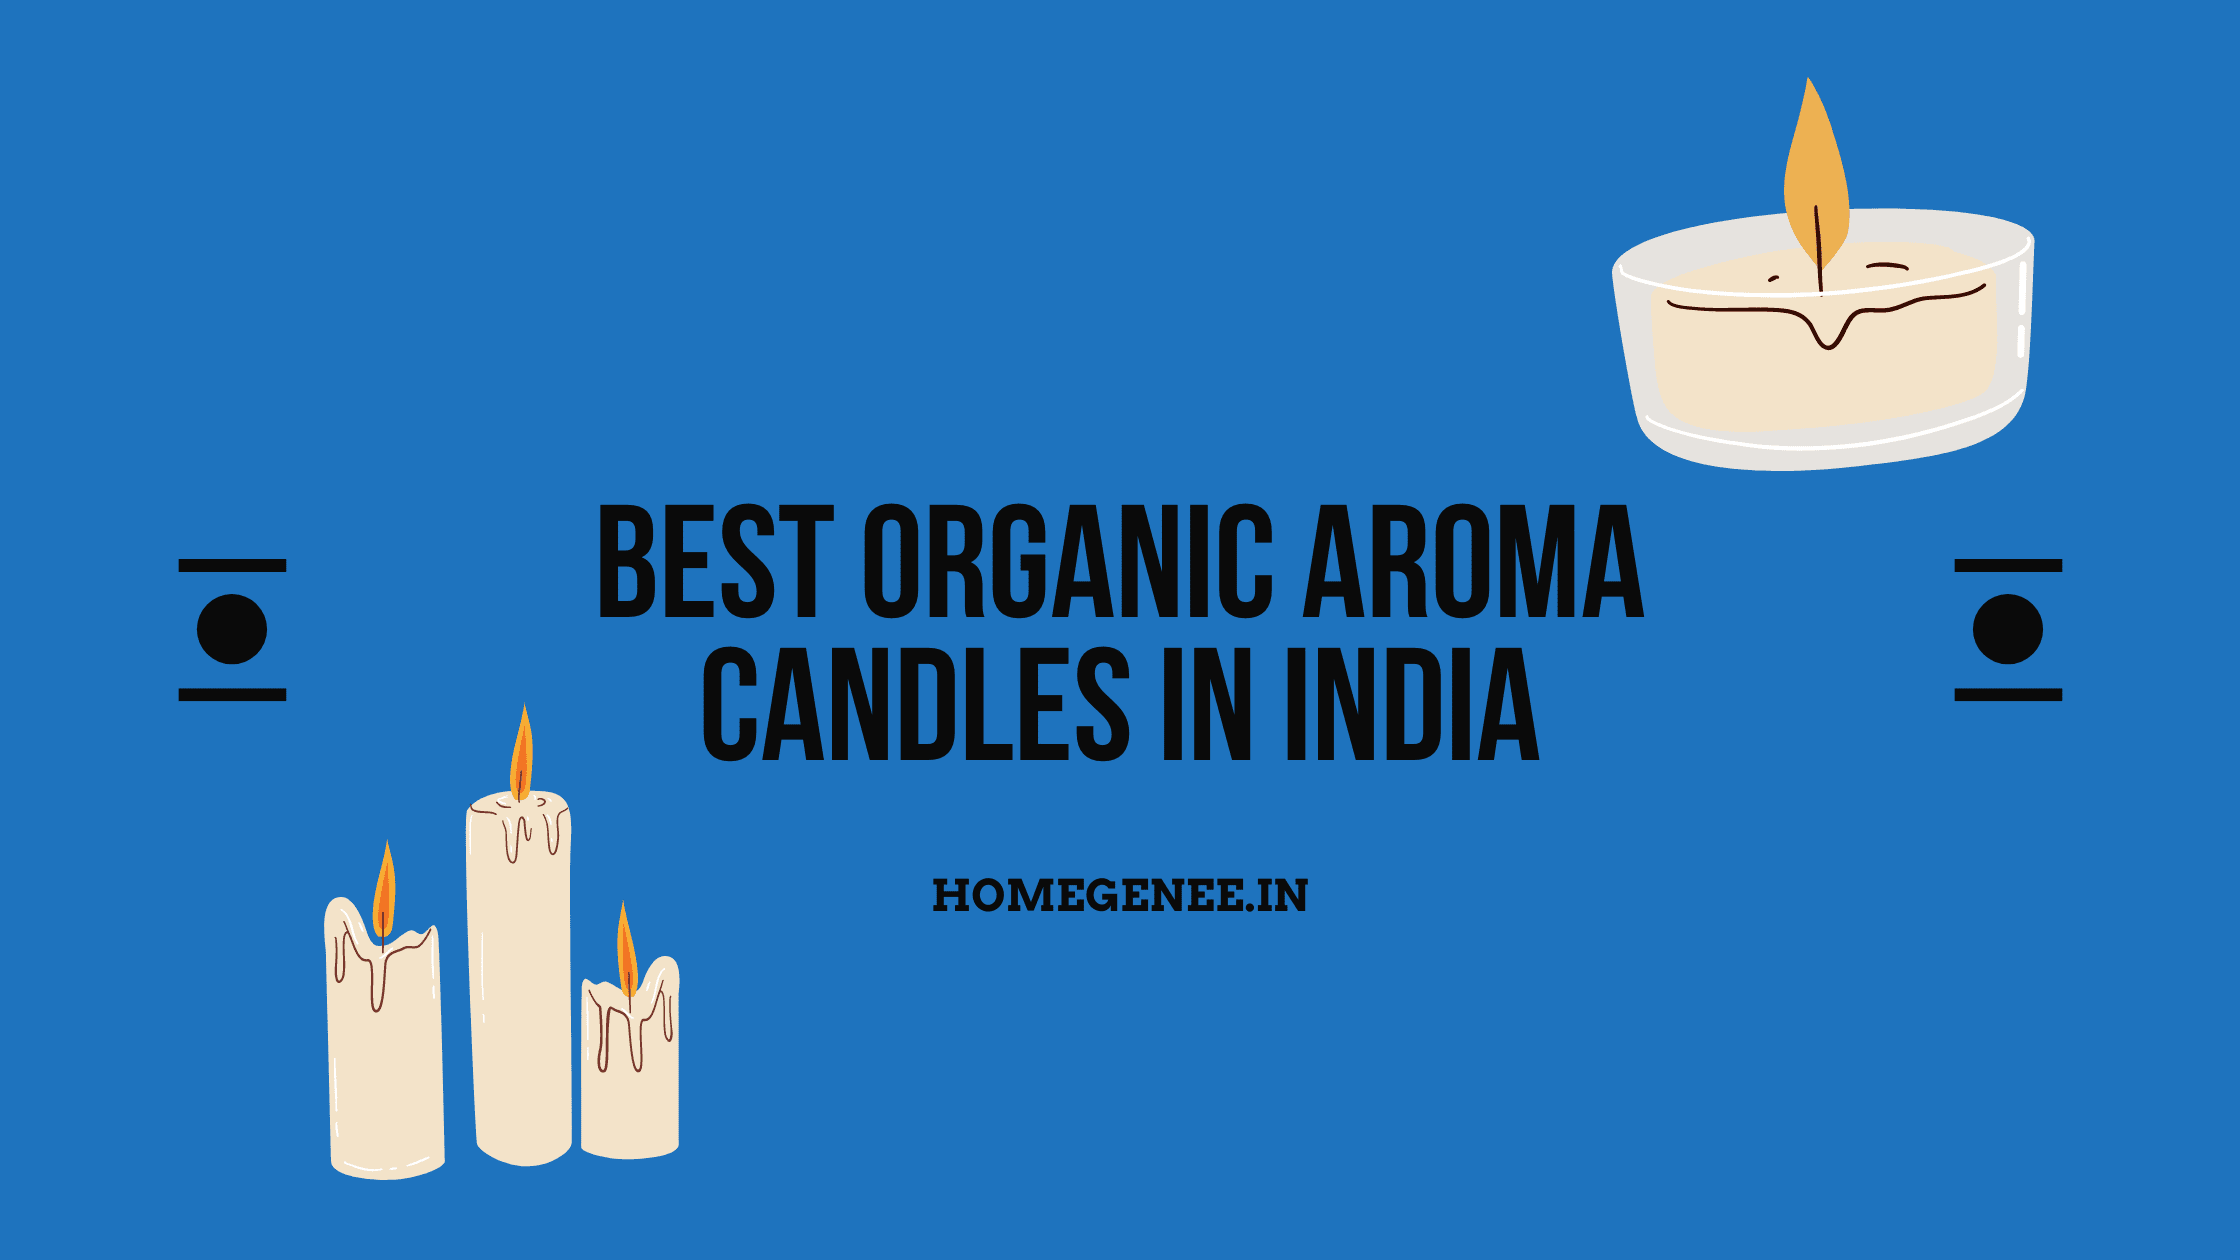 Best Organic Aroma Candles In India